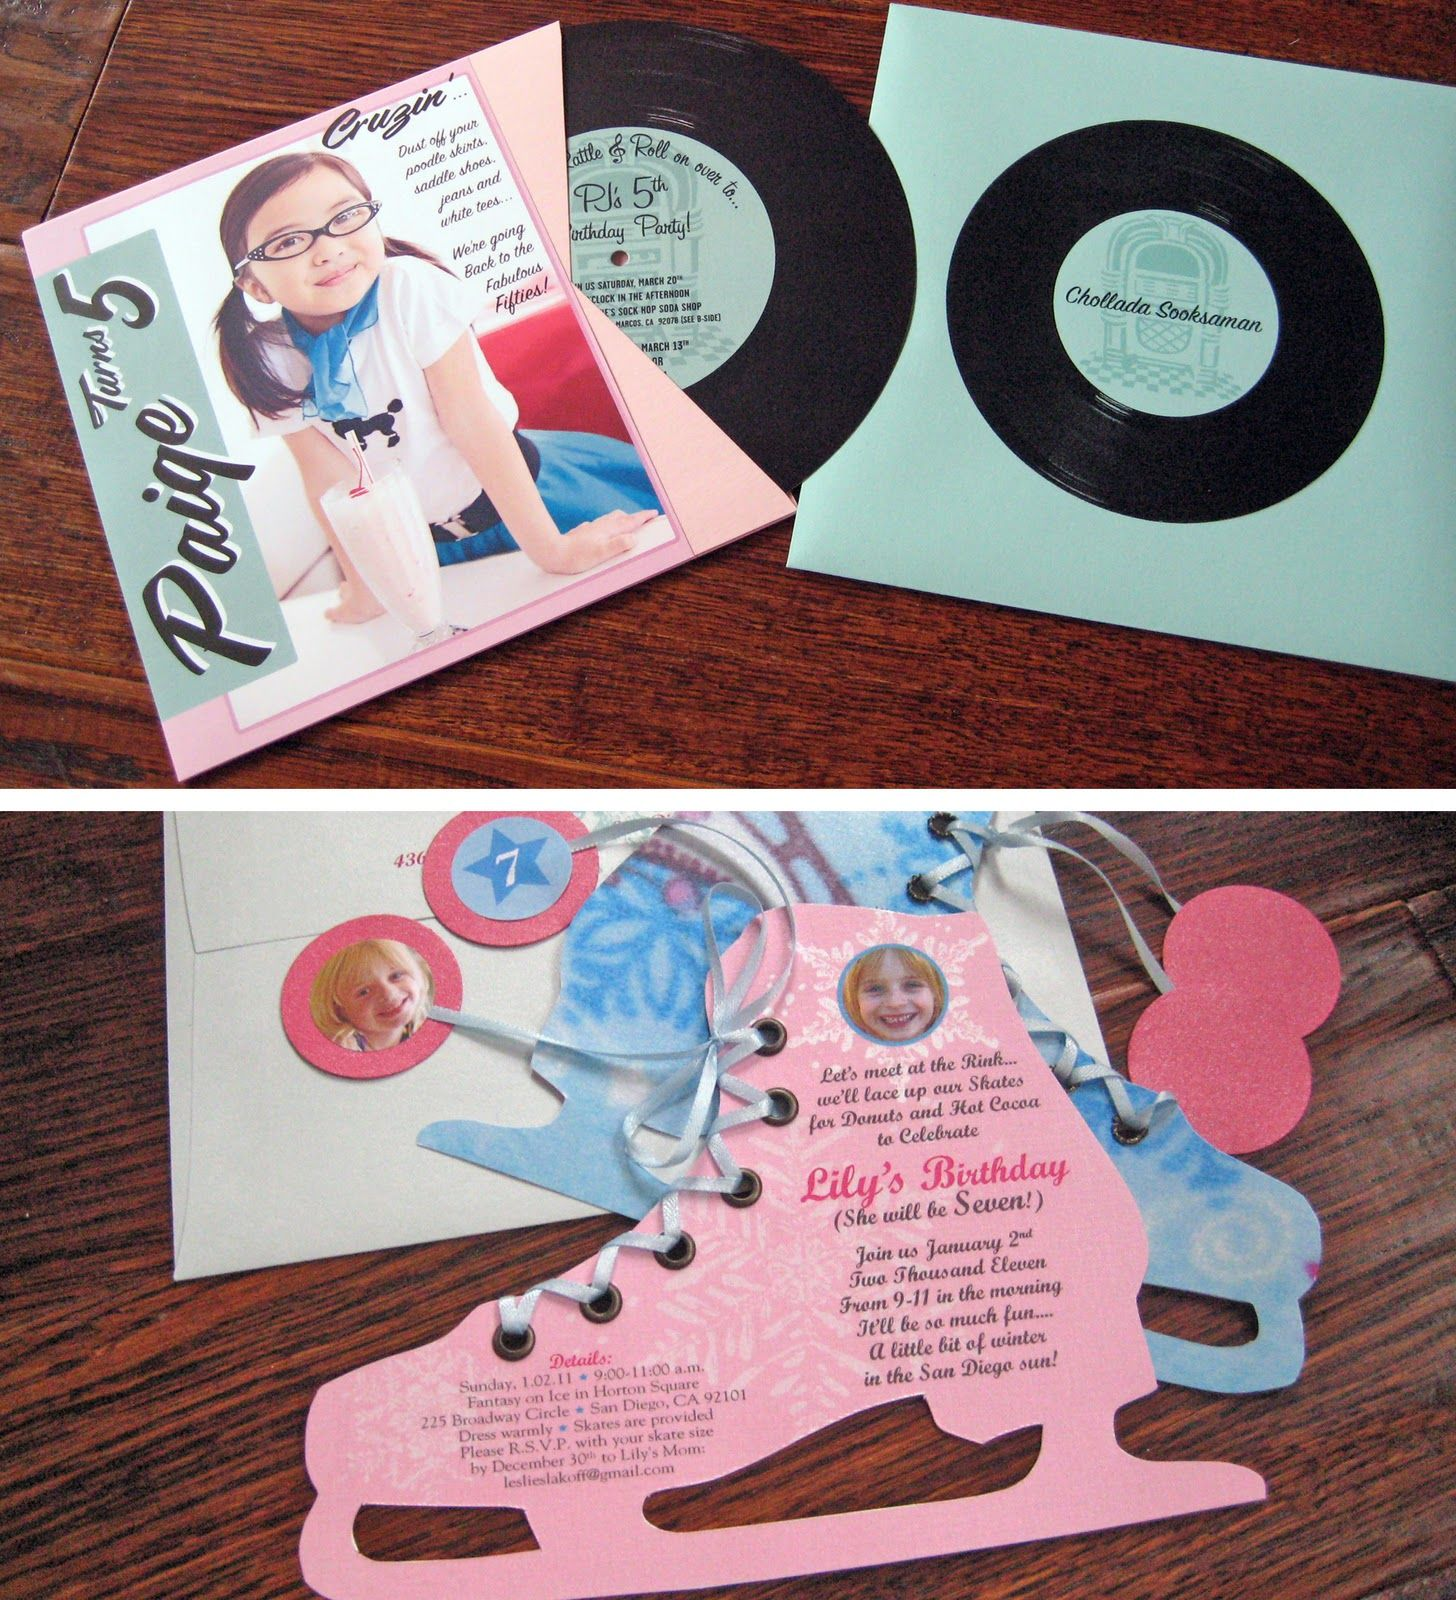 record invites | LDSYW | Pinterest | Sock hop party and Birthdays